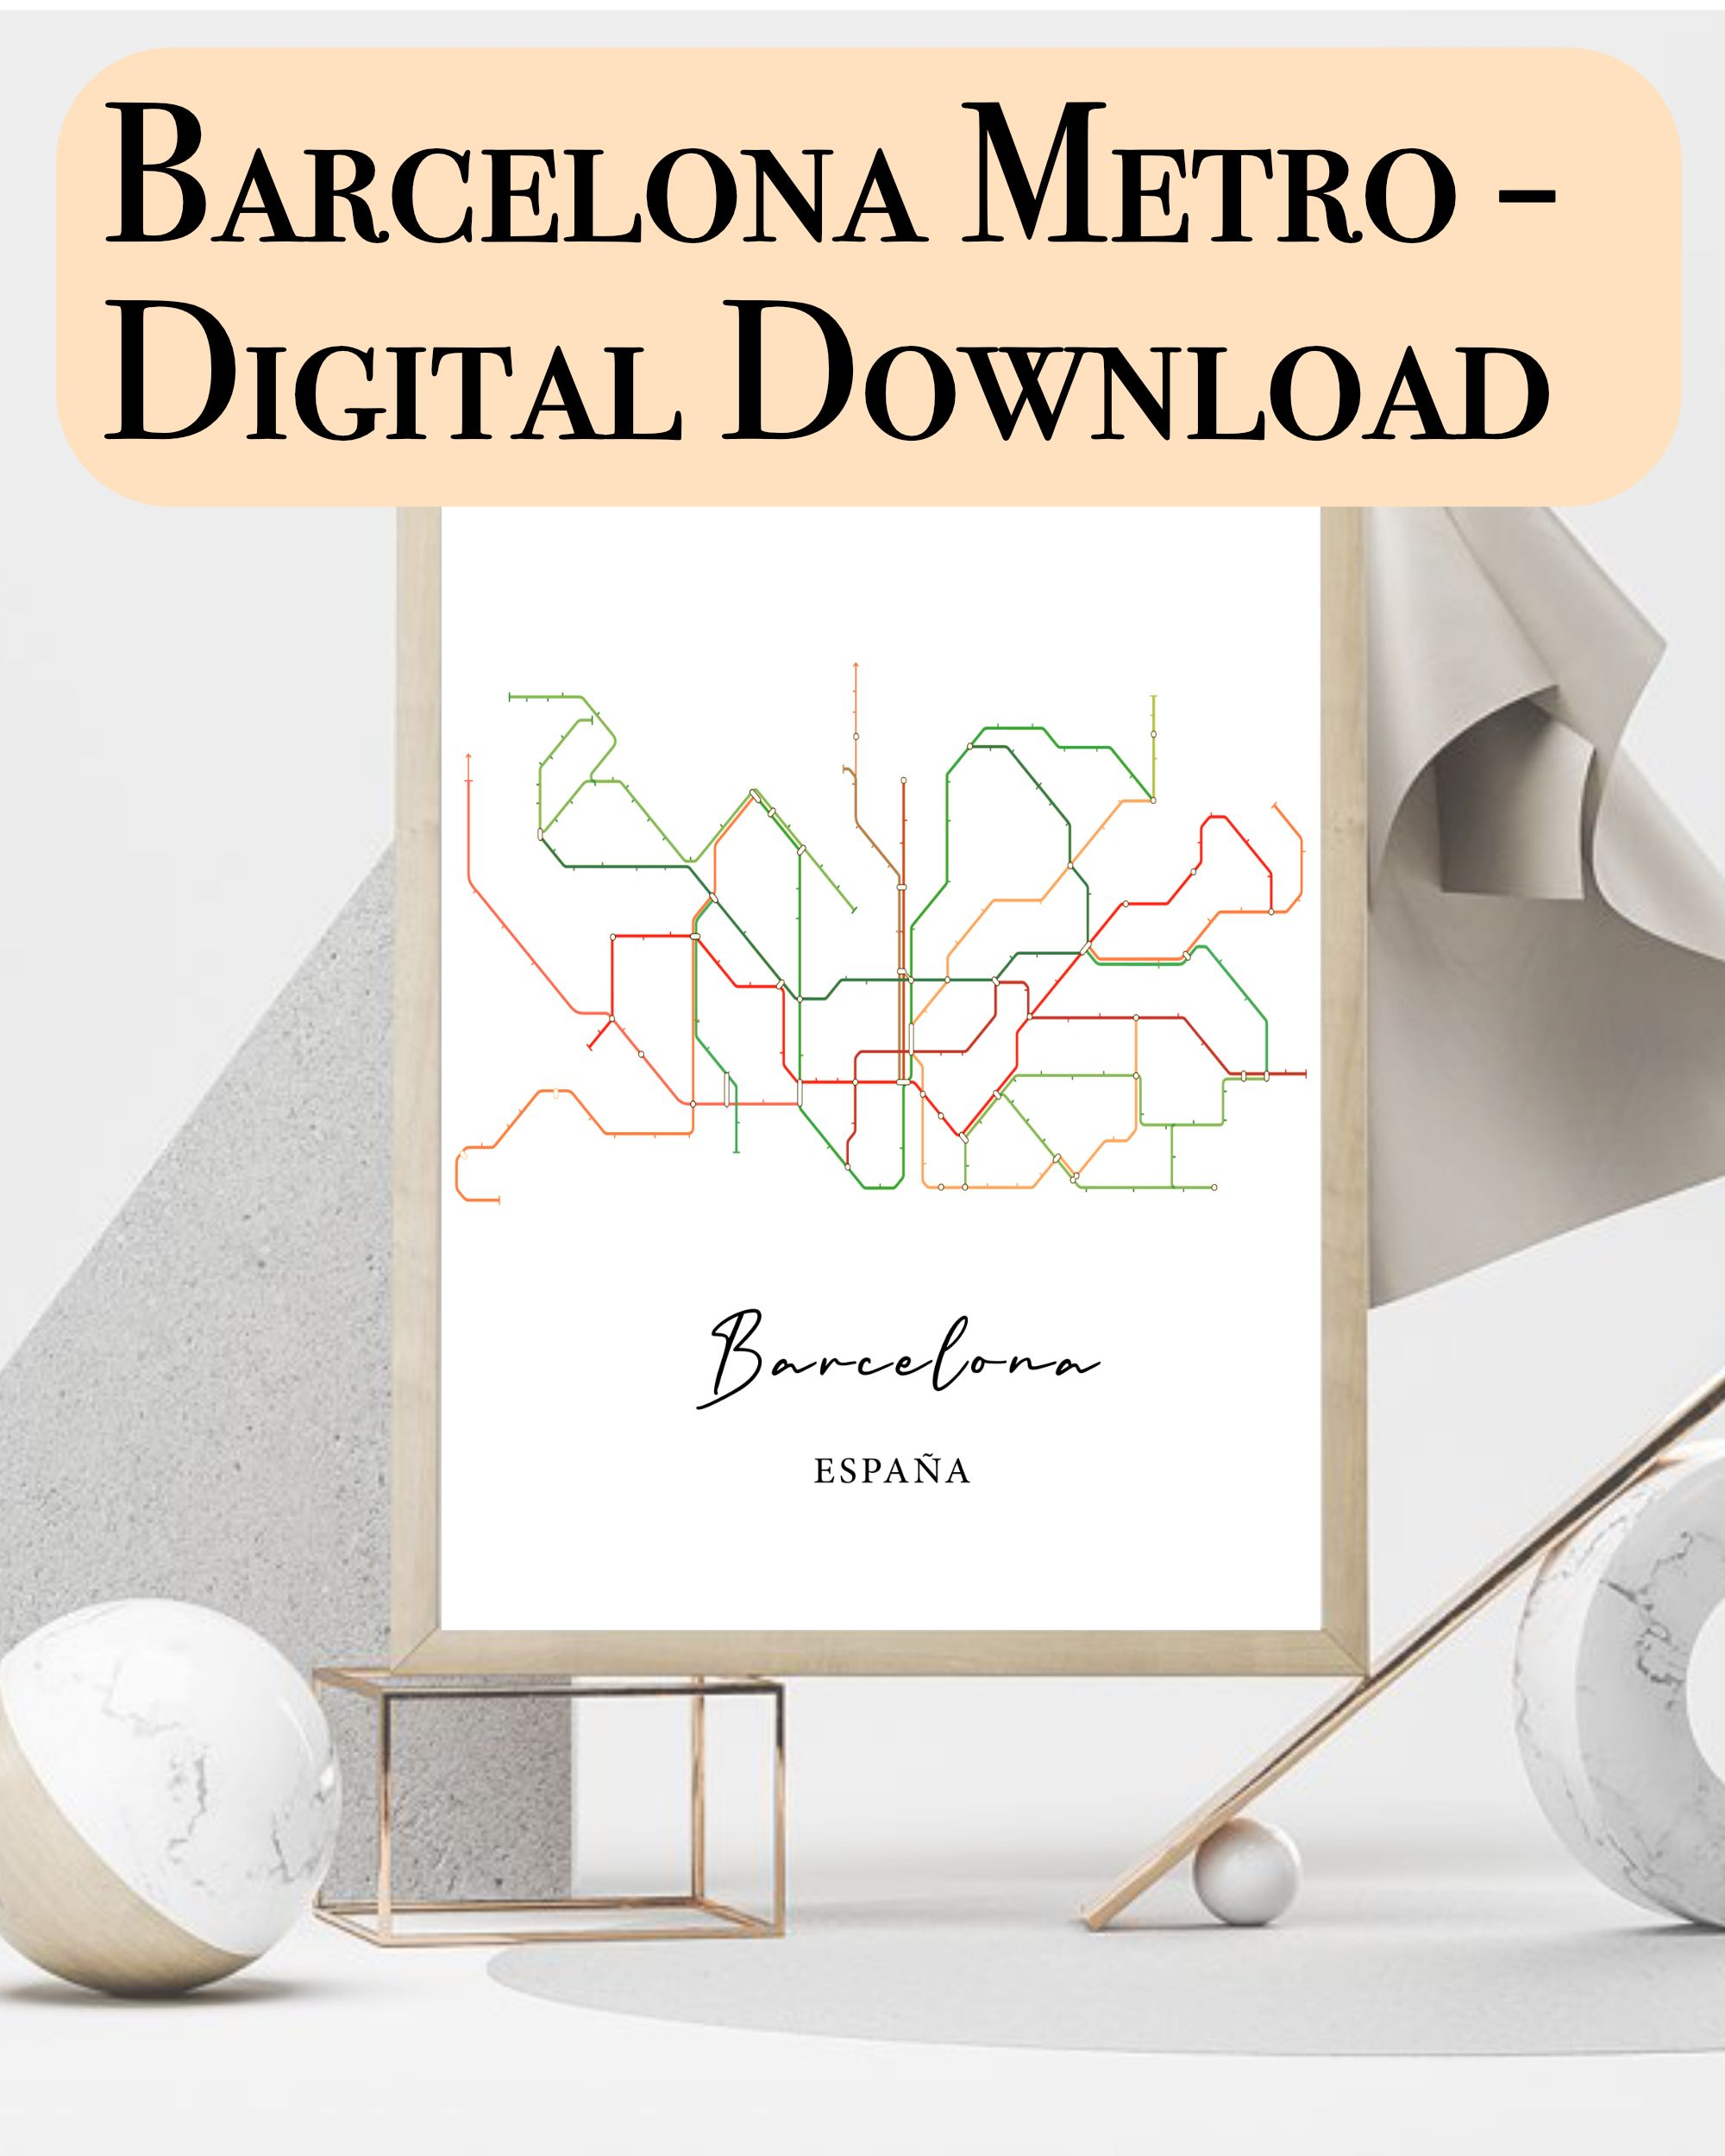 One of a kind special poster of the metro map of Barcelona. Do you love Barcelona and are you a fan of minimalistic art? You will love this art piece. You are completely in control of how you can print it, frame it and where you want to place it!  No extra or hidden costs!  barcelona poster, barcelona spain, barcelona metro, barcelona art, spain art, minimalistic art, digital downloadprintable, digital poster, barcelona city mapbarcelona print, barcelona map line, barcelona art print